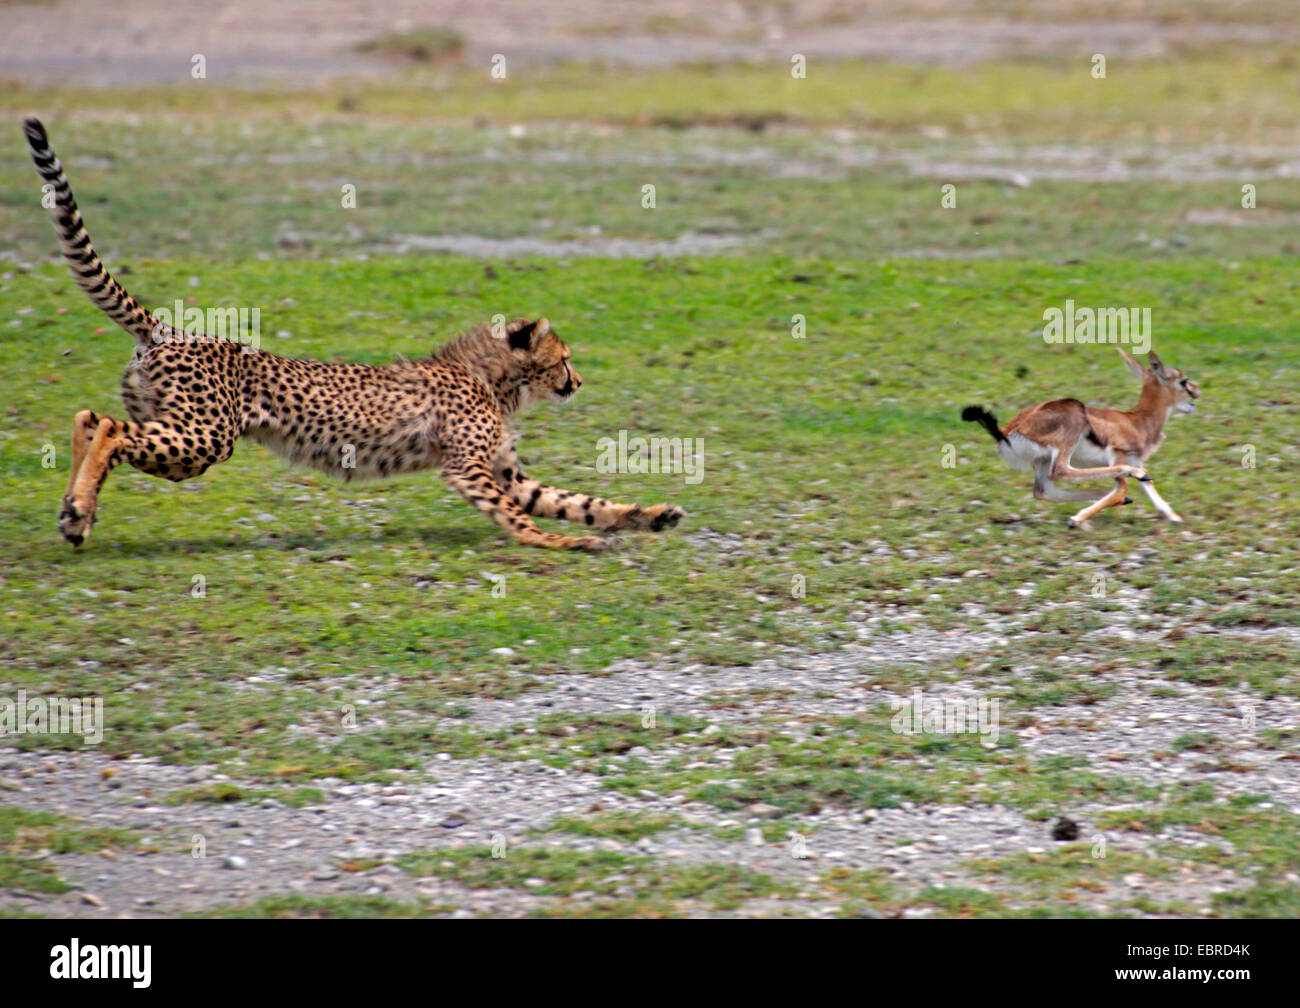 cheetah (Acinonyx jubatus), young animal hunting a young gazelle, Tanzania, Serengeti National Park - Stock Image